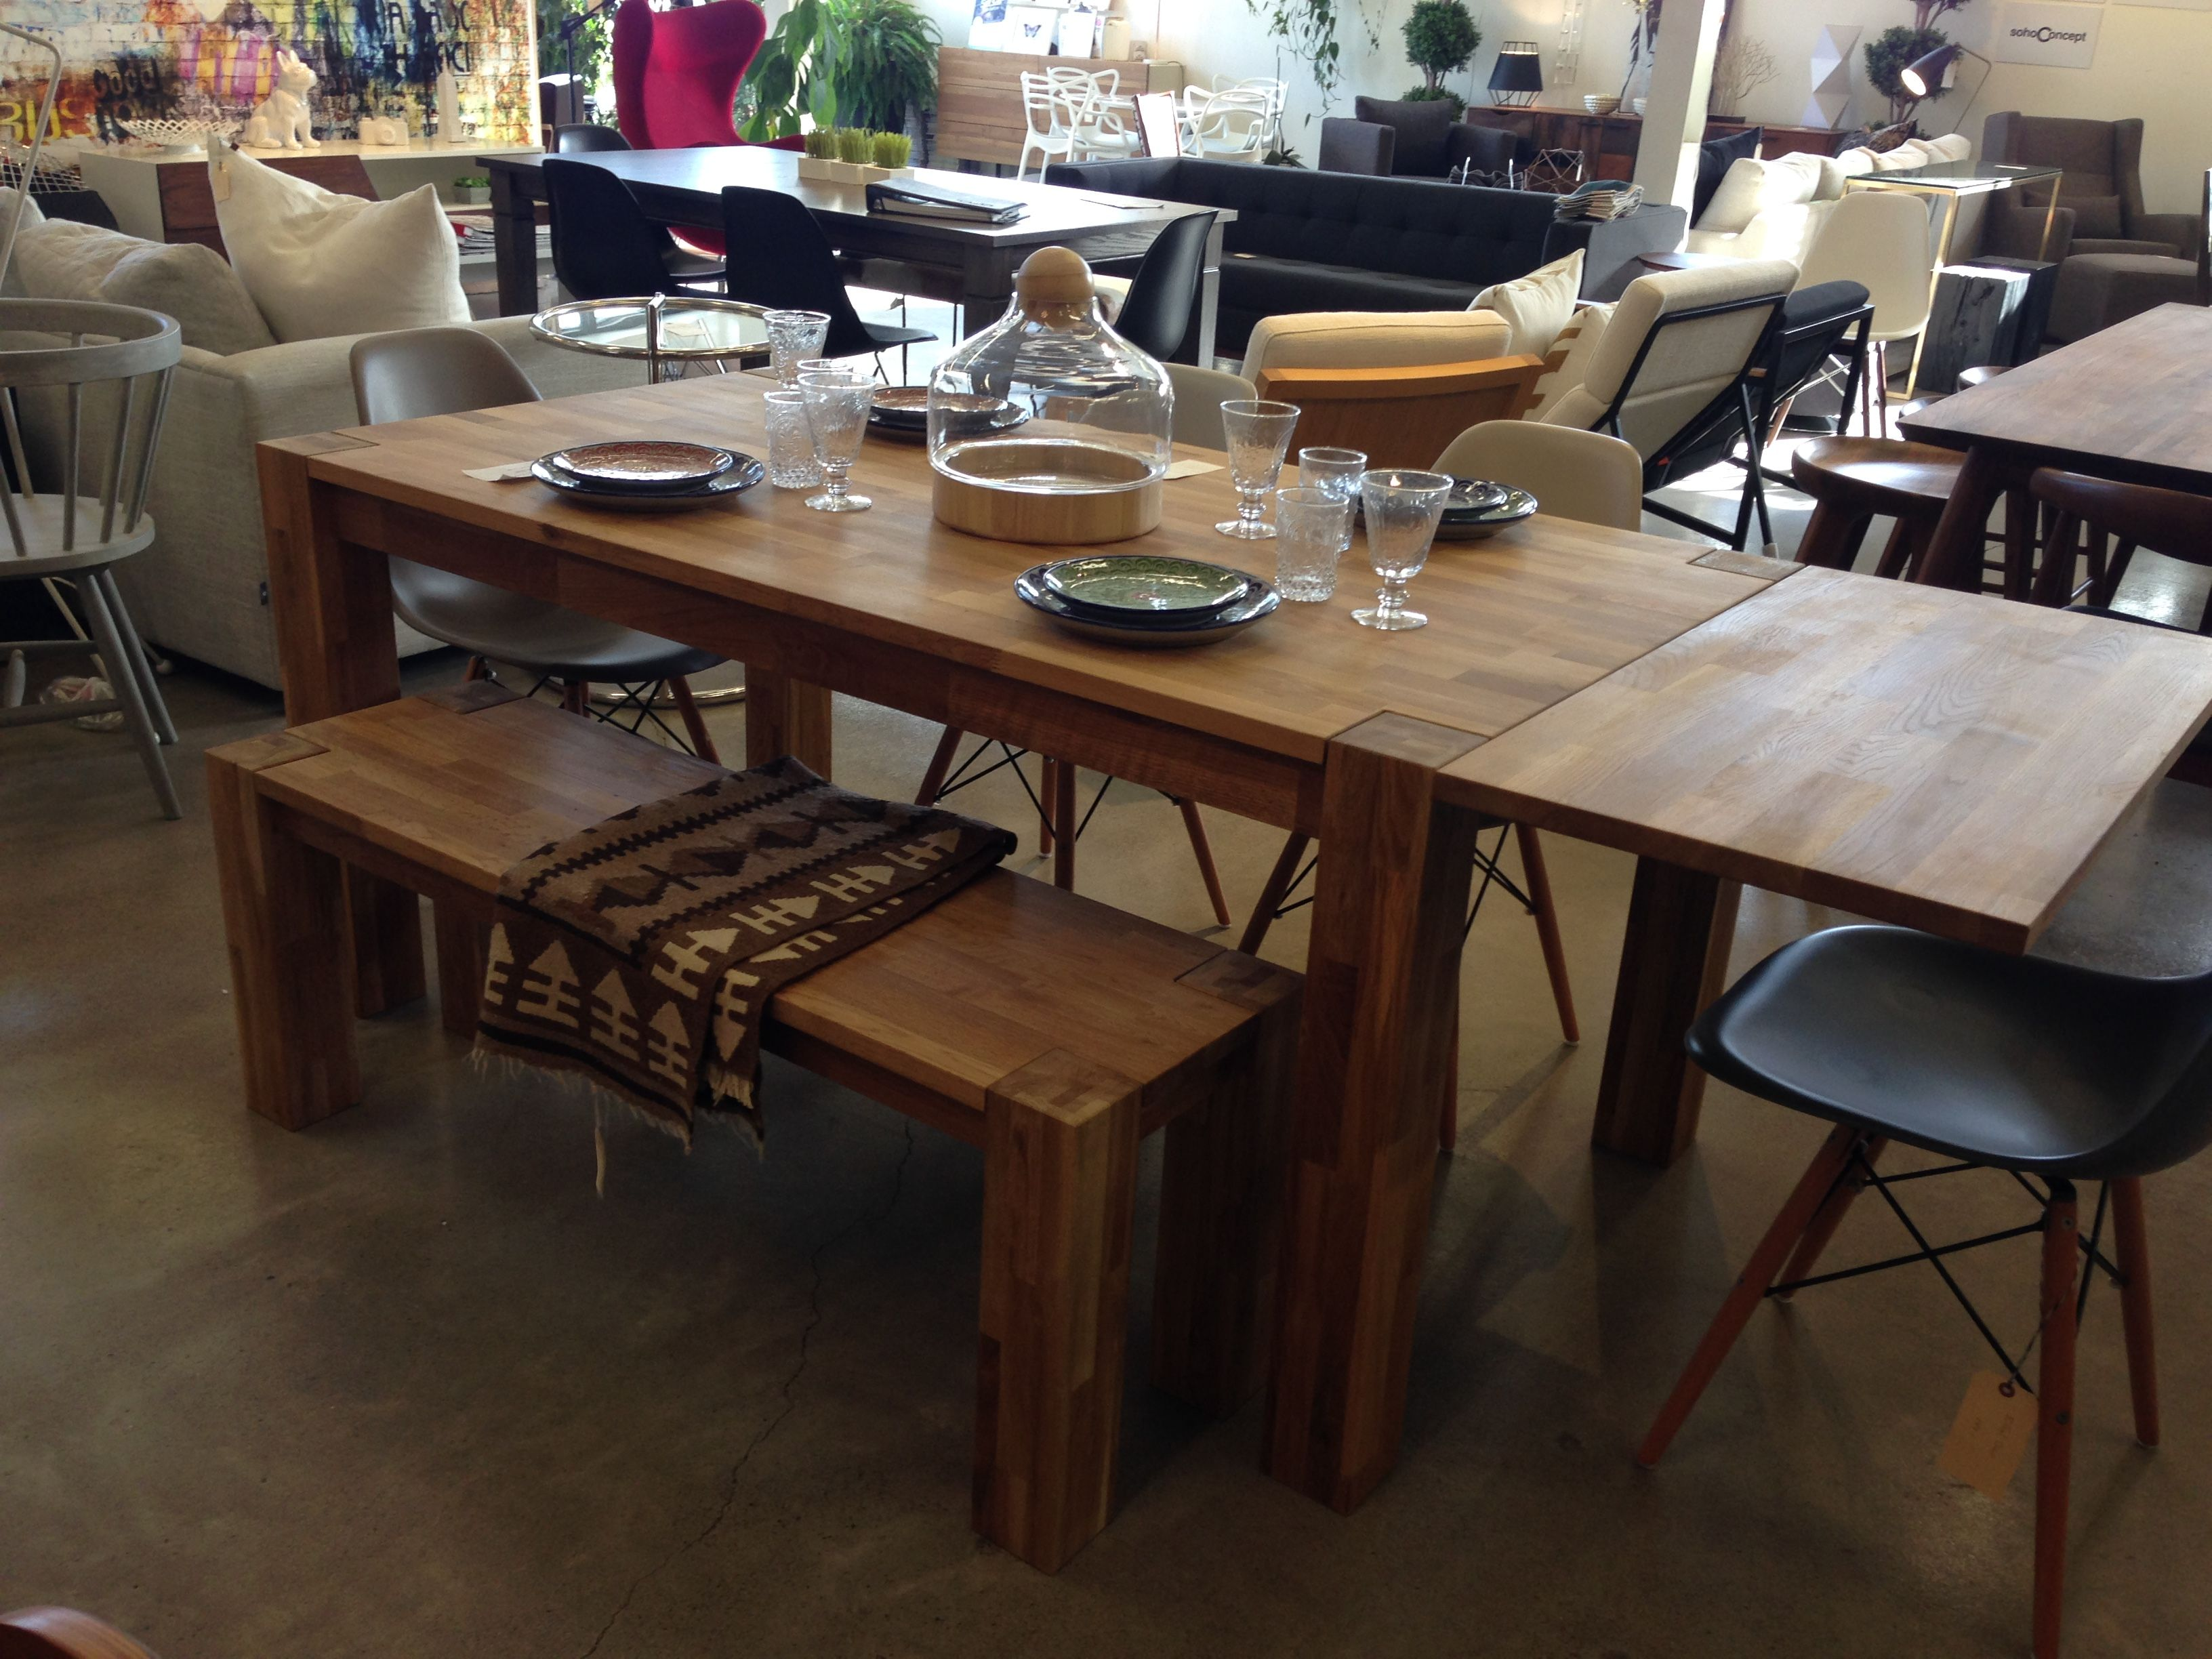 Harvest Kitchen Table Eq3 harvest table home design pinterest kitchen redo room eq3 harvest table workwithnaturefo